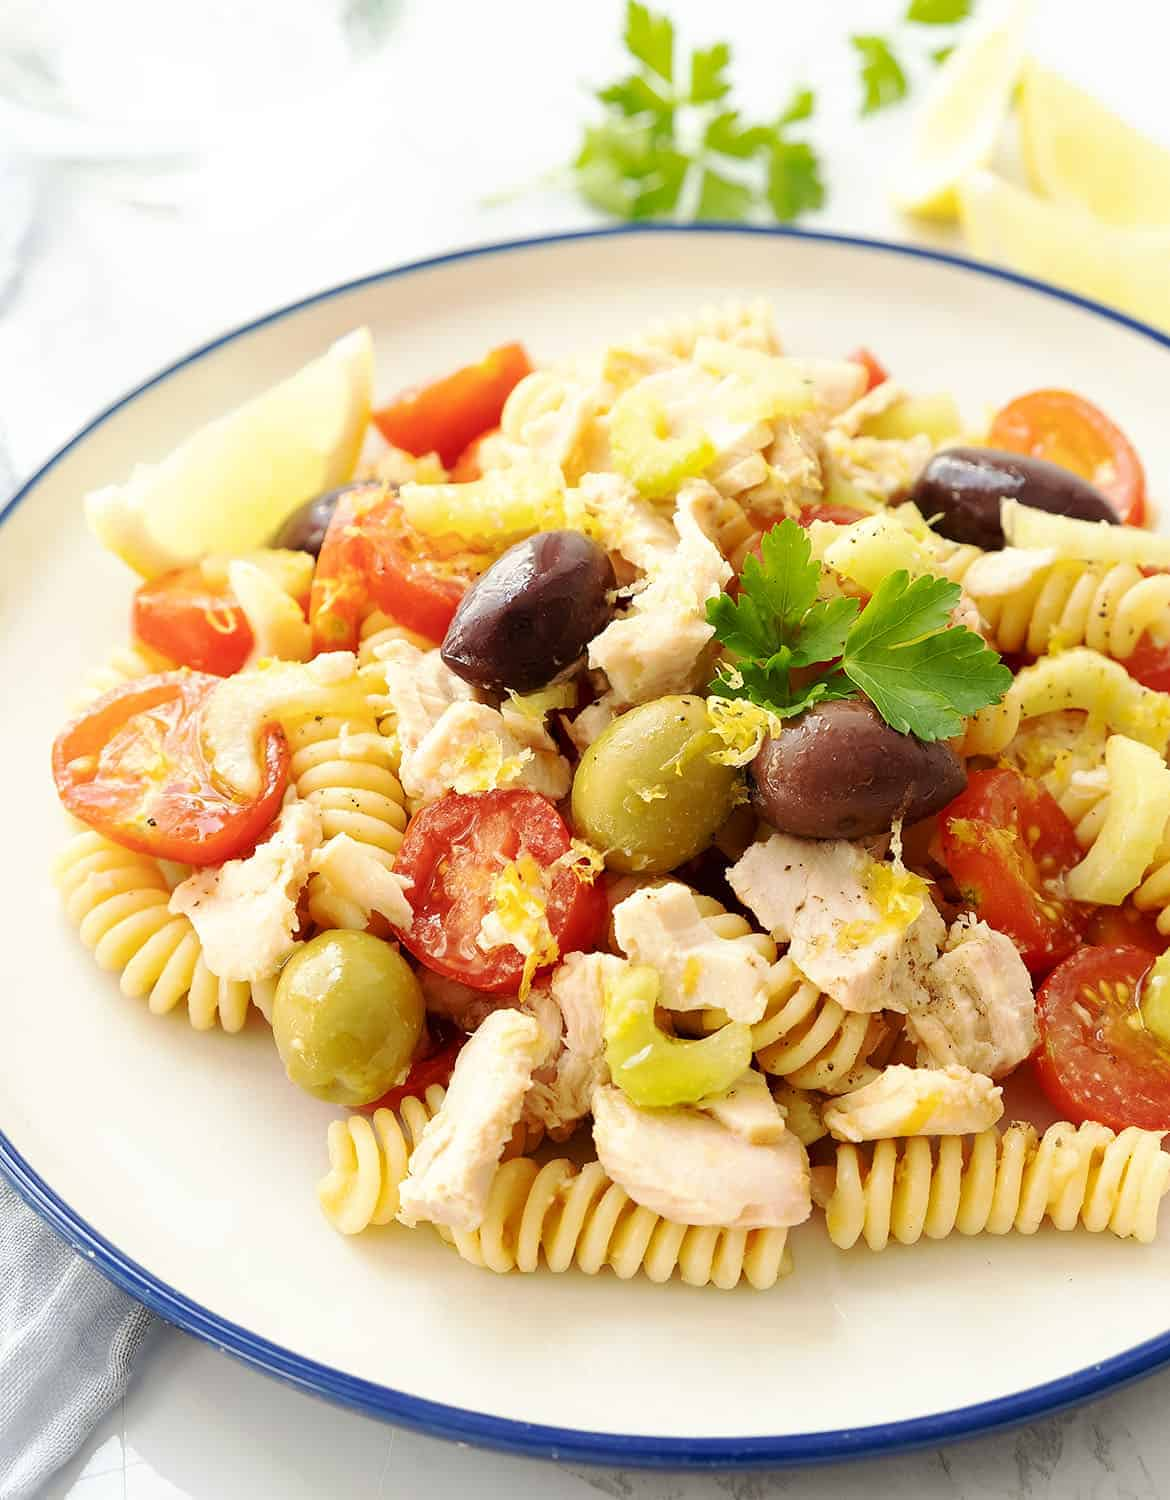 Tuna pasta salad with olive and tomatoes is served in a white plate with a blue rim.